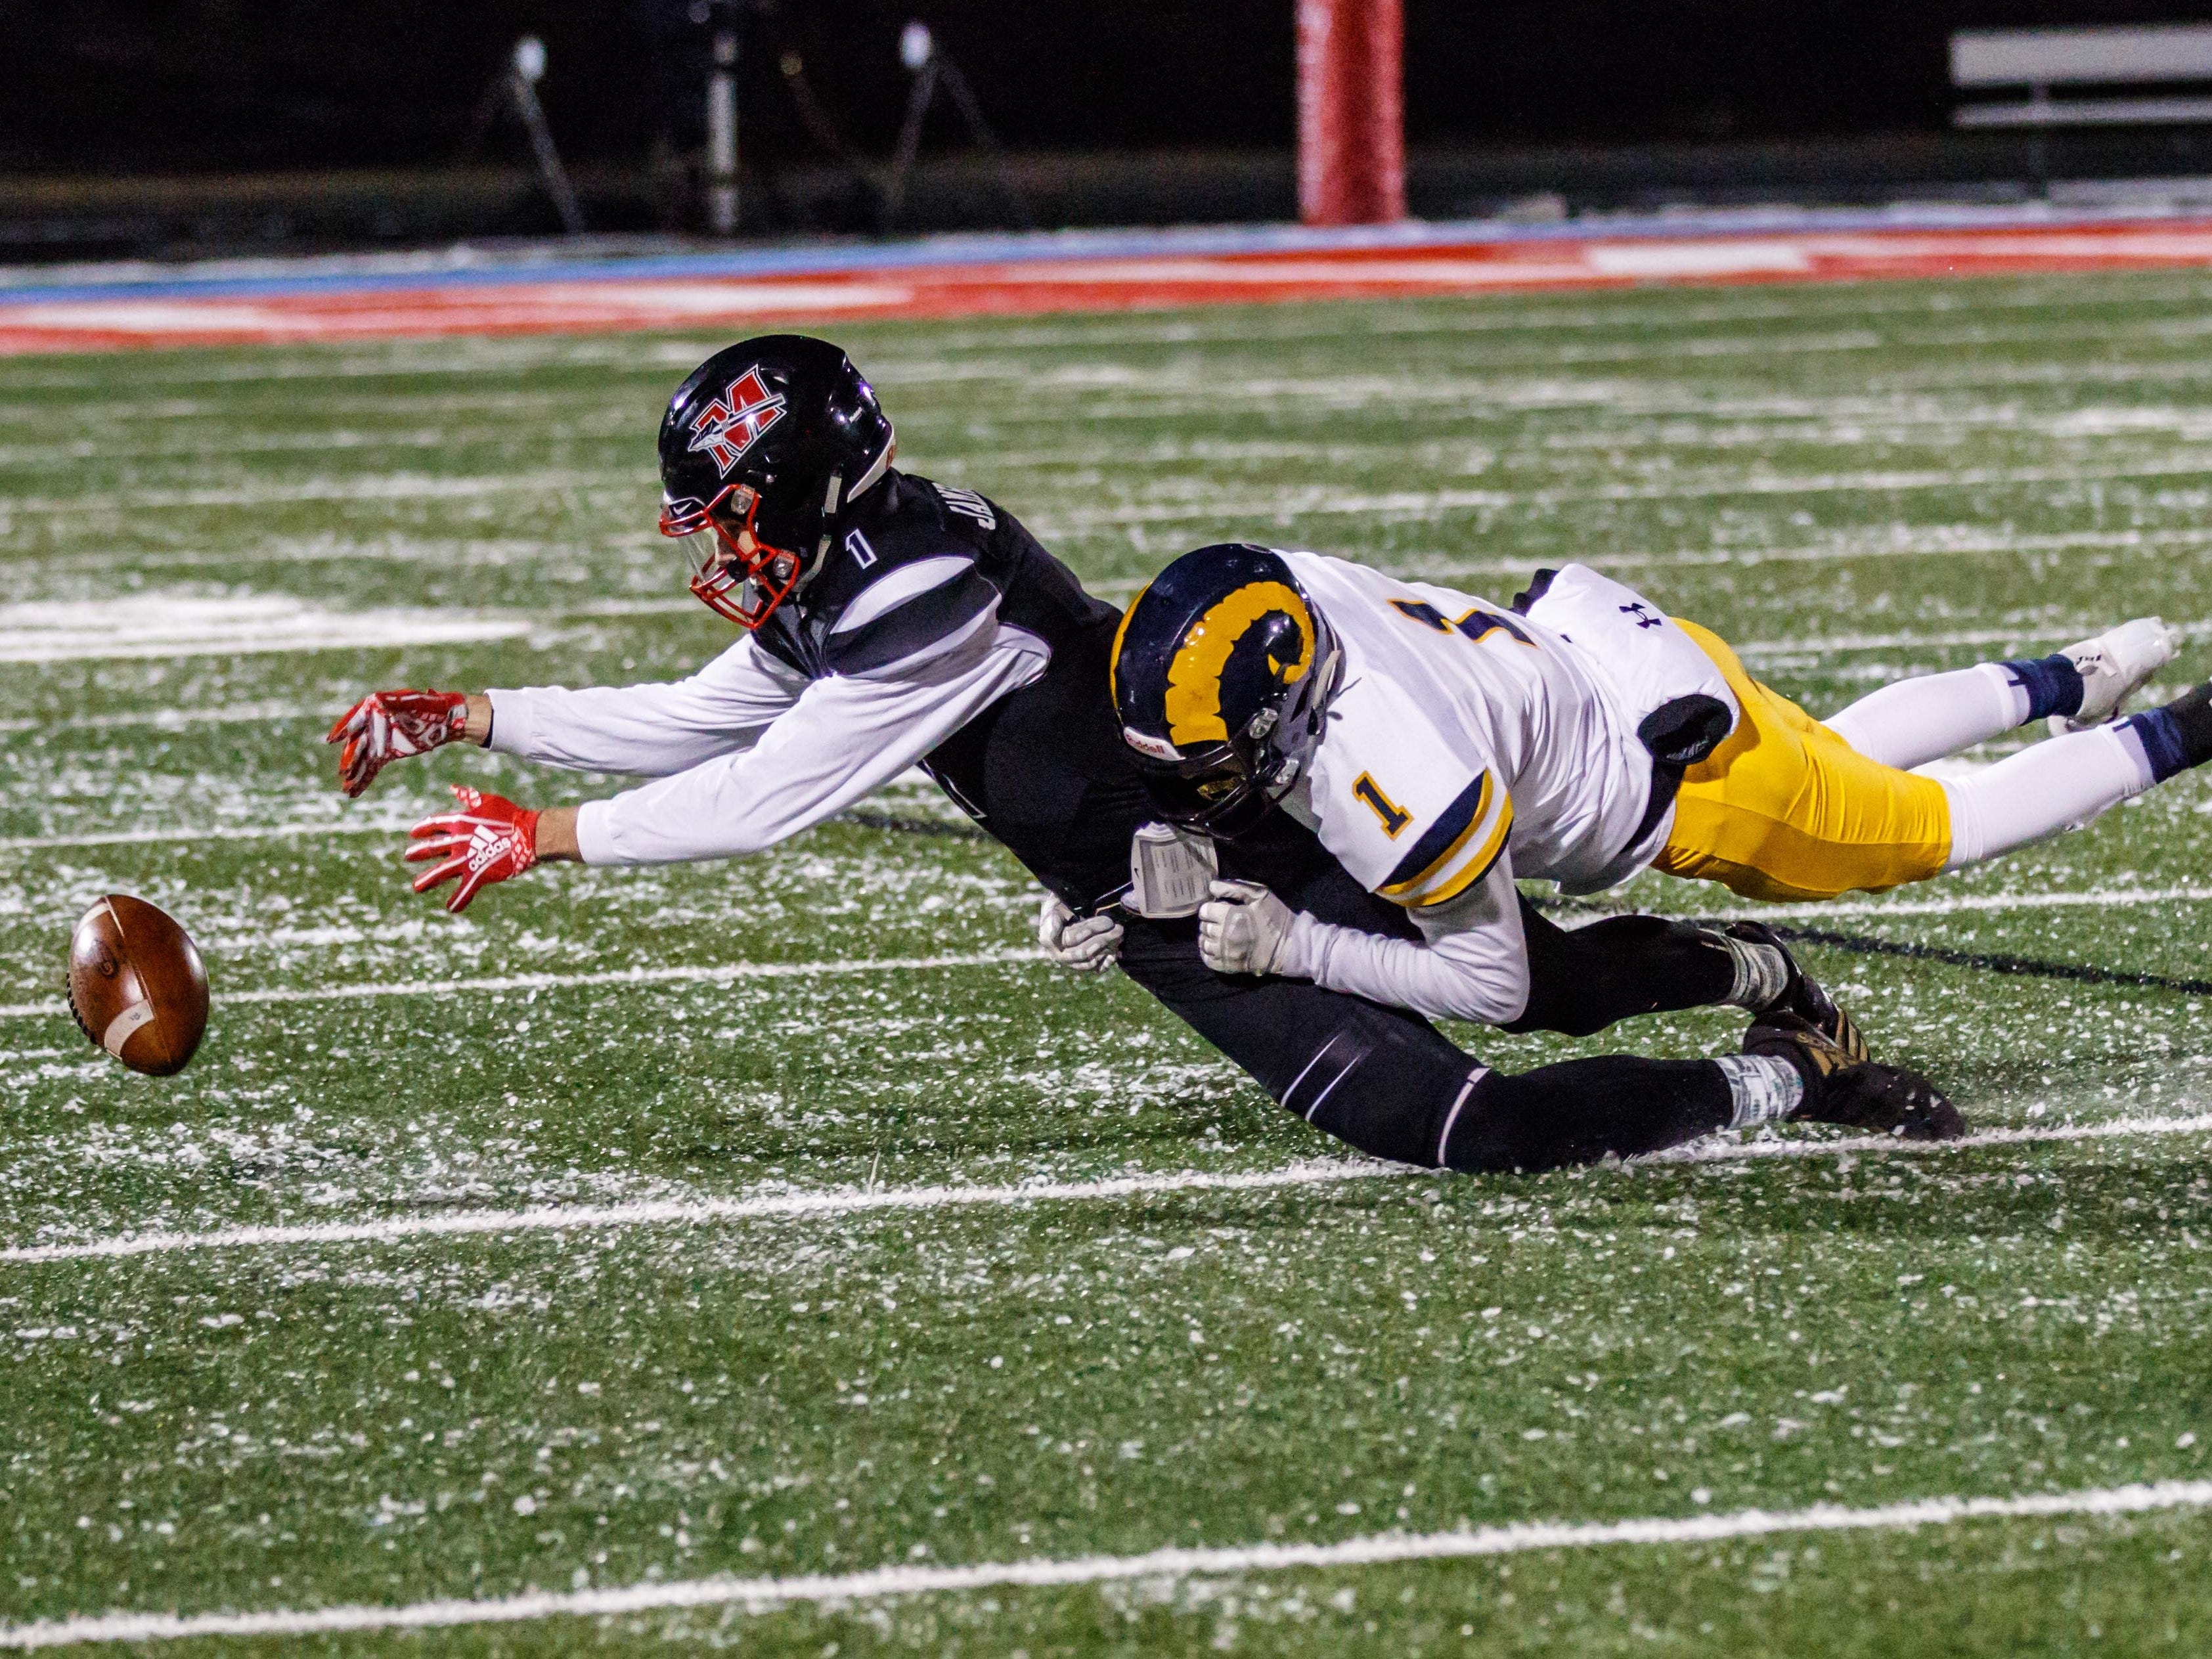 Marquette defensive back Patrick Coury (right) causes Muskego's Steven Jamroziak to drop a pass during the WIAA Division 1 Level 4 playoff game against Muskego in Hartland on Friday, Nov. 9, 2018.